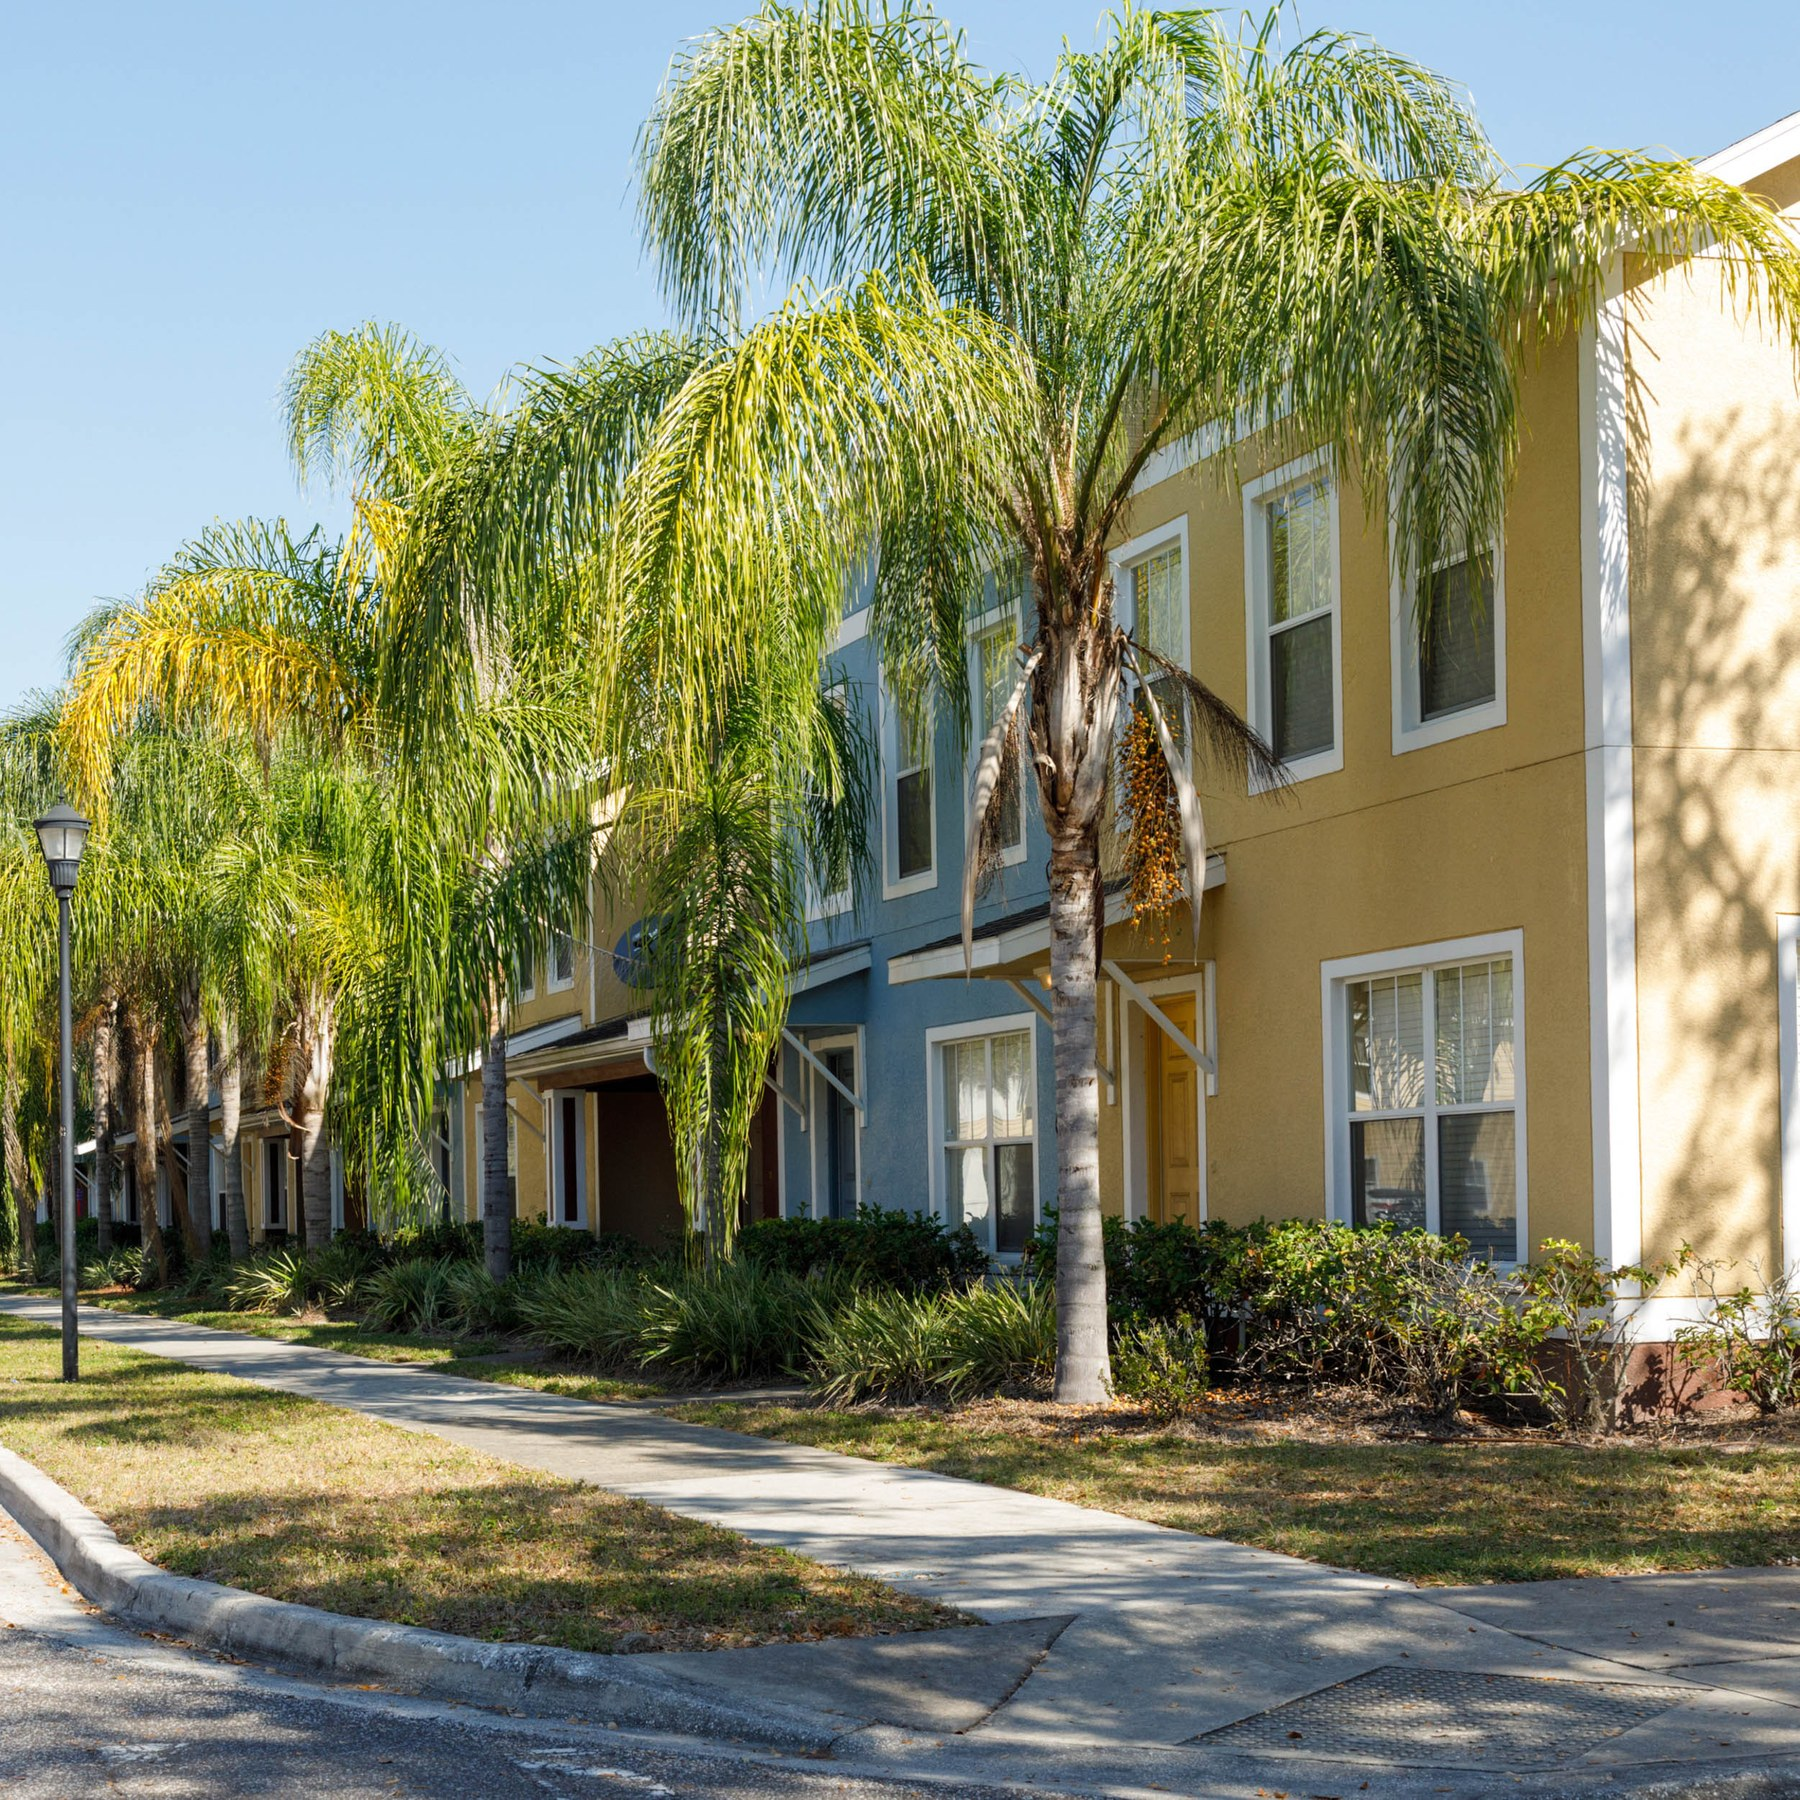 Tampa Fl Apartments For Rent In Old Seminole Heights: Seminole Heights, Tampa FL - Neighborhood Guide